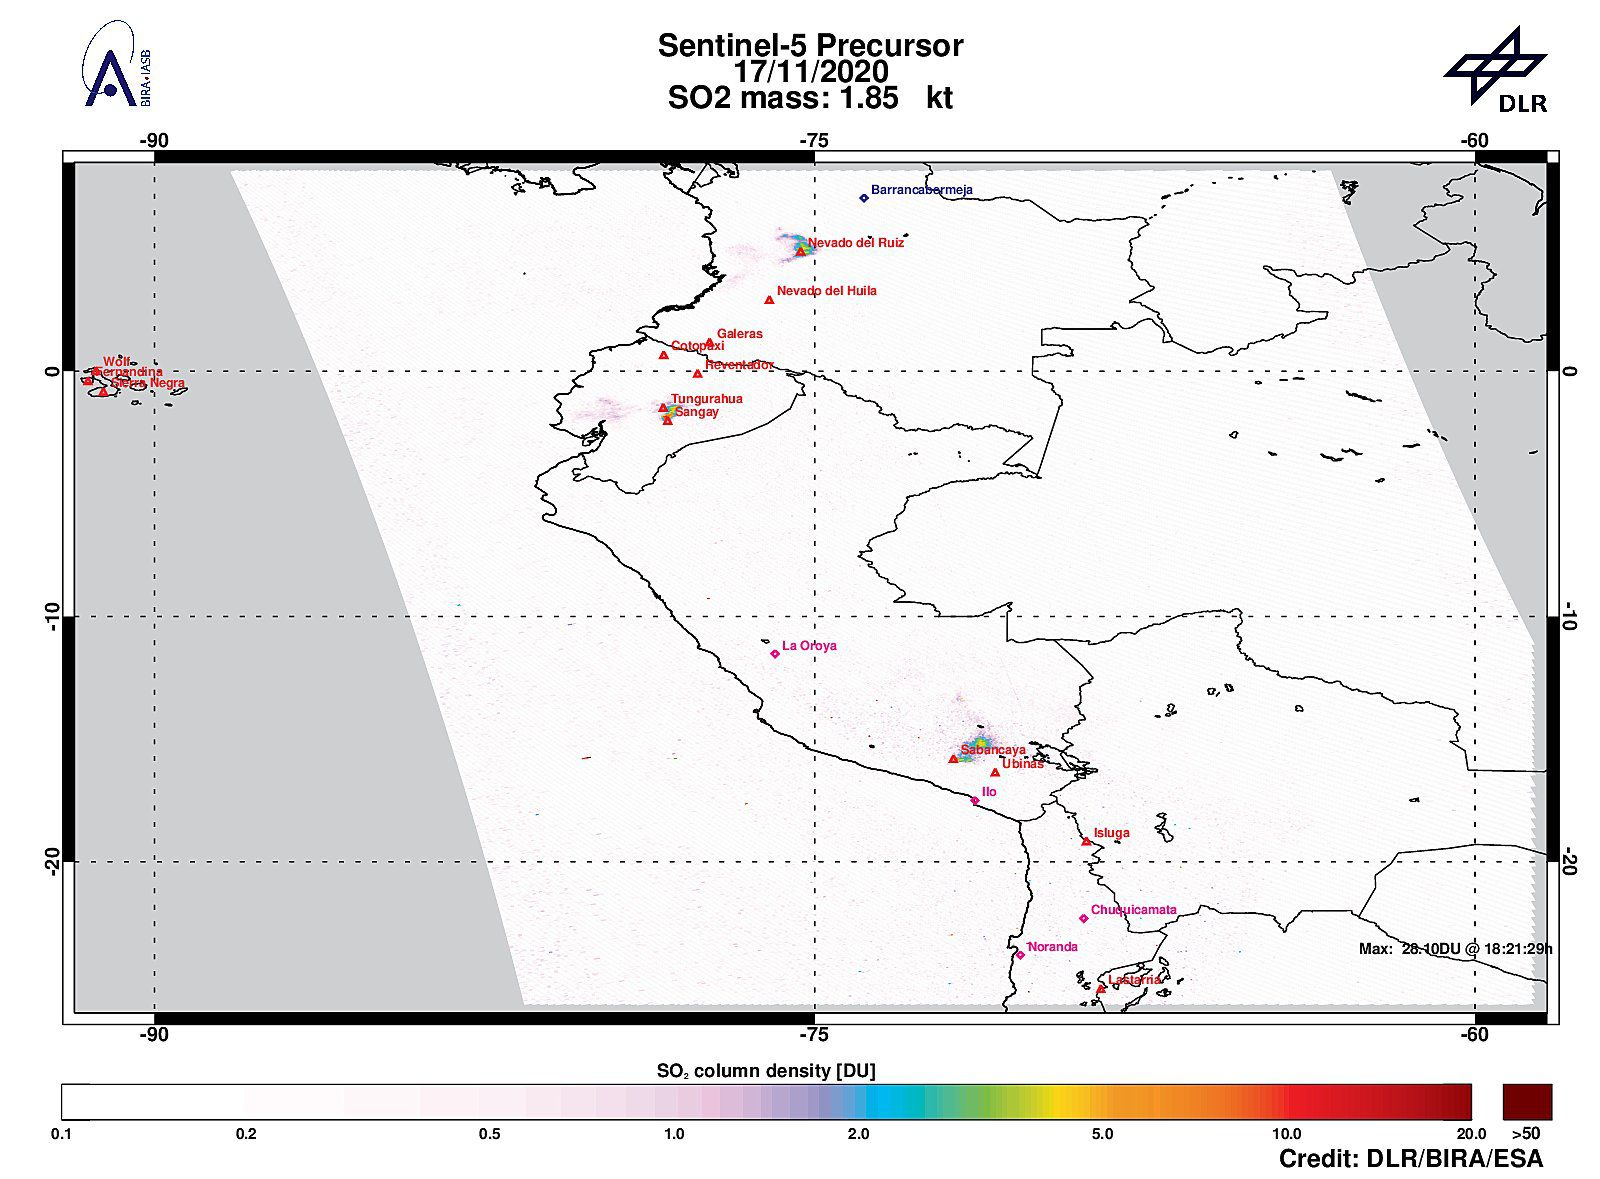 Sabancaya - 11/17/2020 Tropomi / Sentinel-5P has detected a strong sulfur dioxide signal near Sabancaya, with 13.65 DU of SO2. (bottom center of document) - Doc. DLR / Bia / ESA - Sentinel-5 P Tropomi